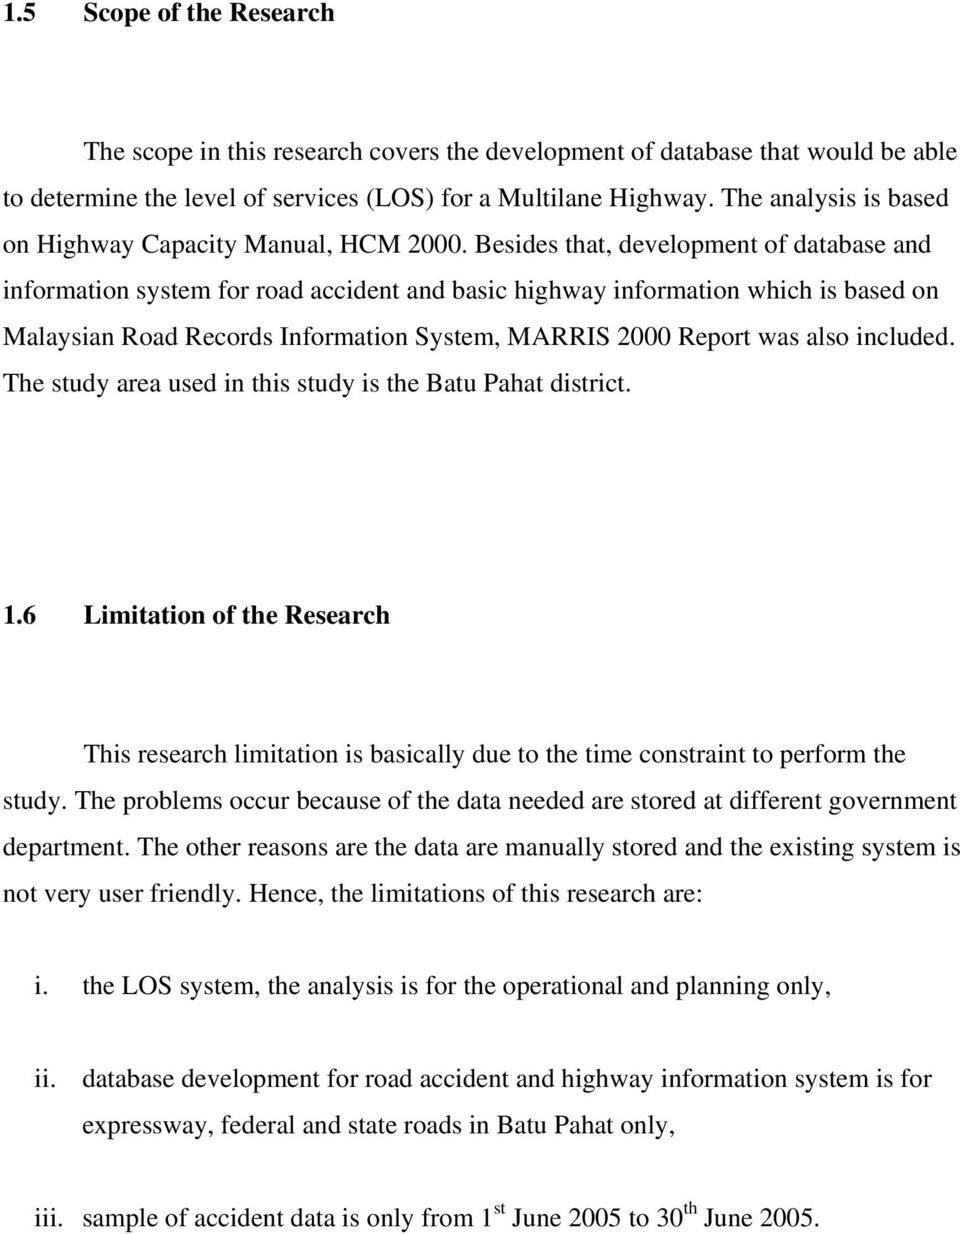 Besides that, development of database and information system for road accident and basic highway information which is based on Malaysian Road Records Information System, MARRIS 2000 Report was also